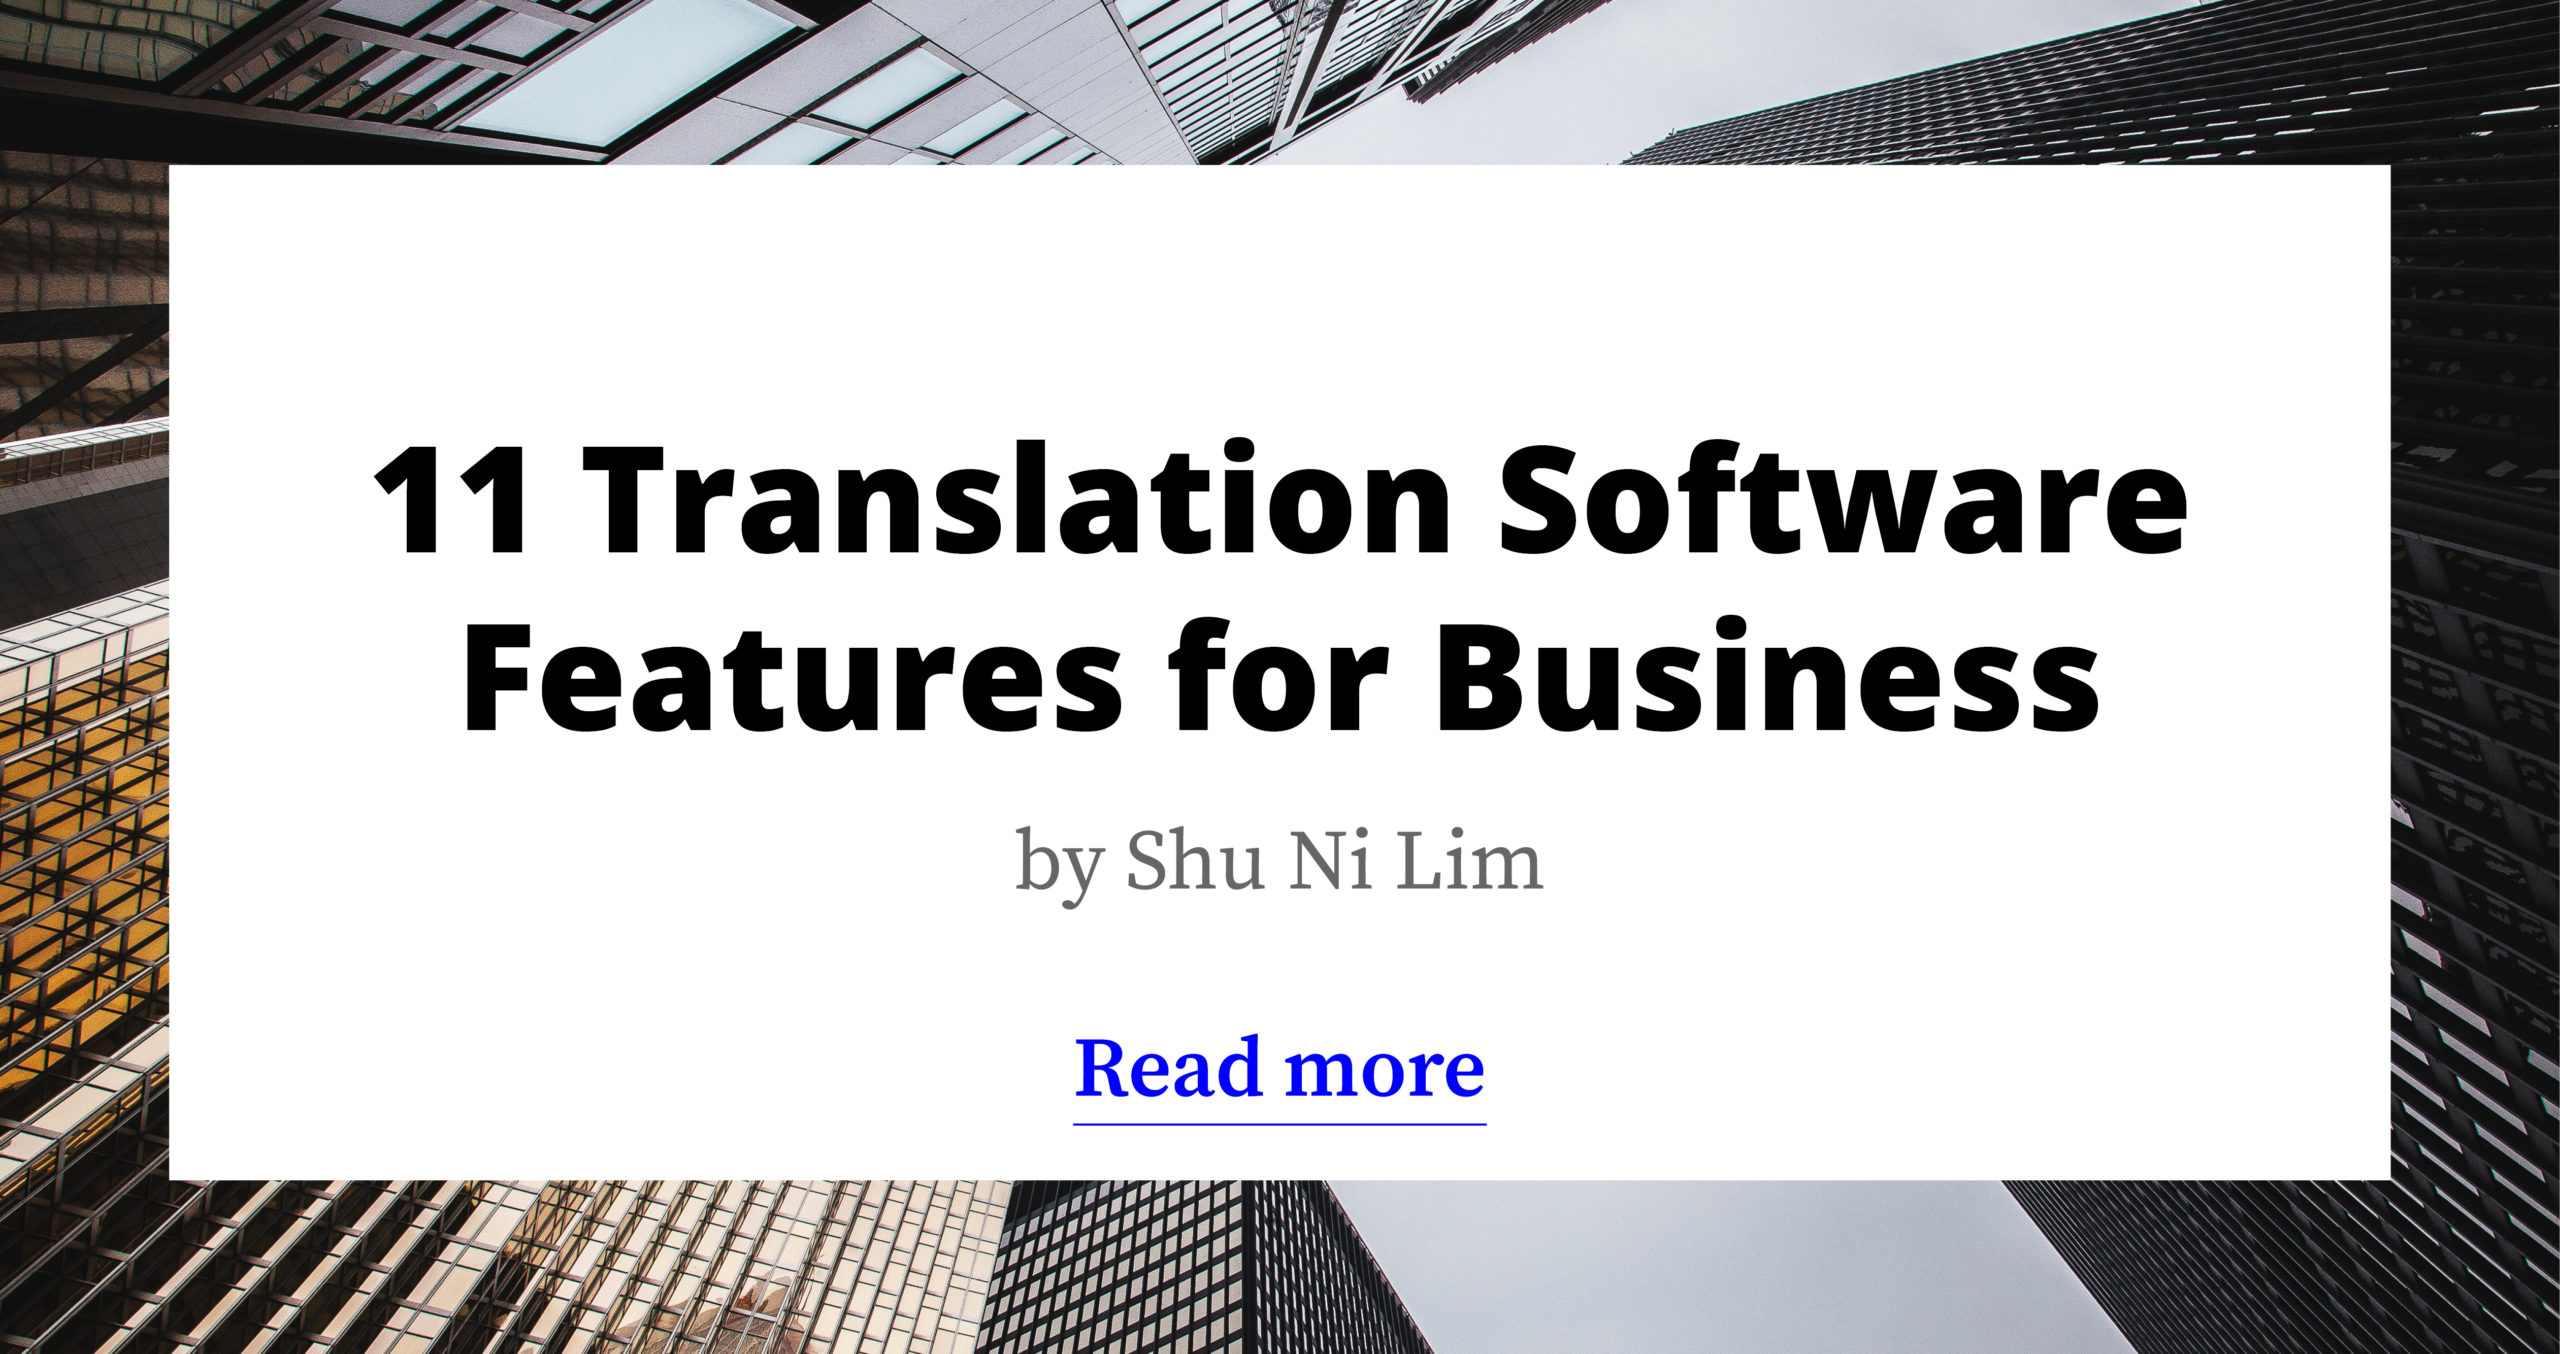 11 Translation Software Features for Business